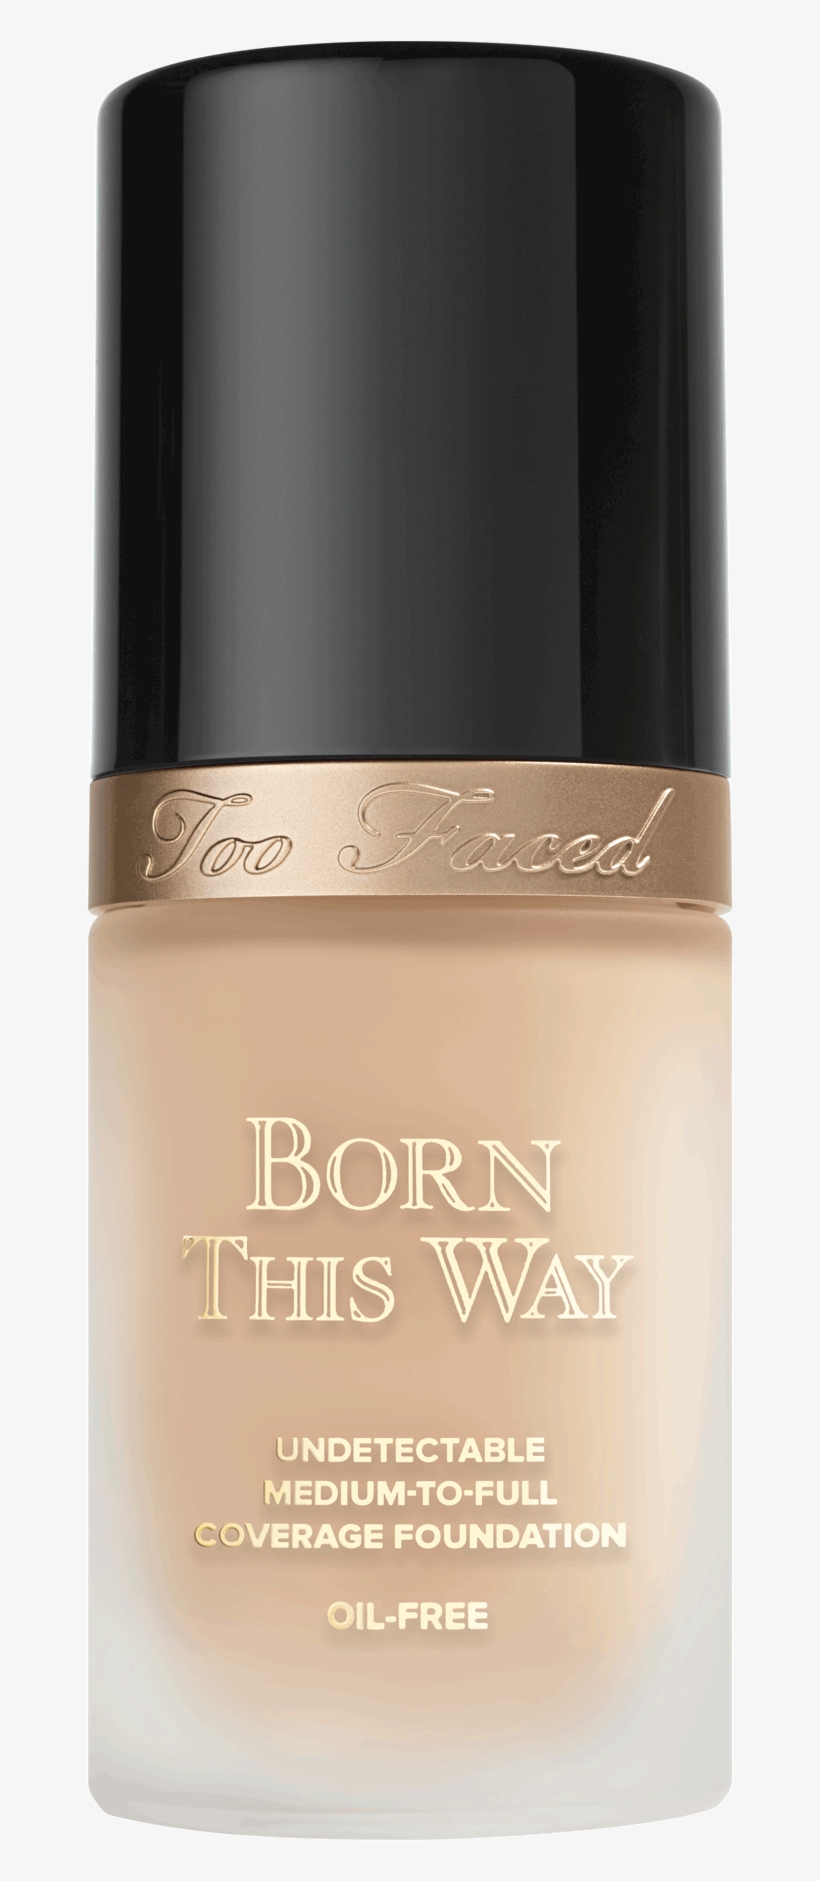 Born This Way Foundation - Two Faced Foundation Born This Way, transparent png #1203814